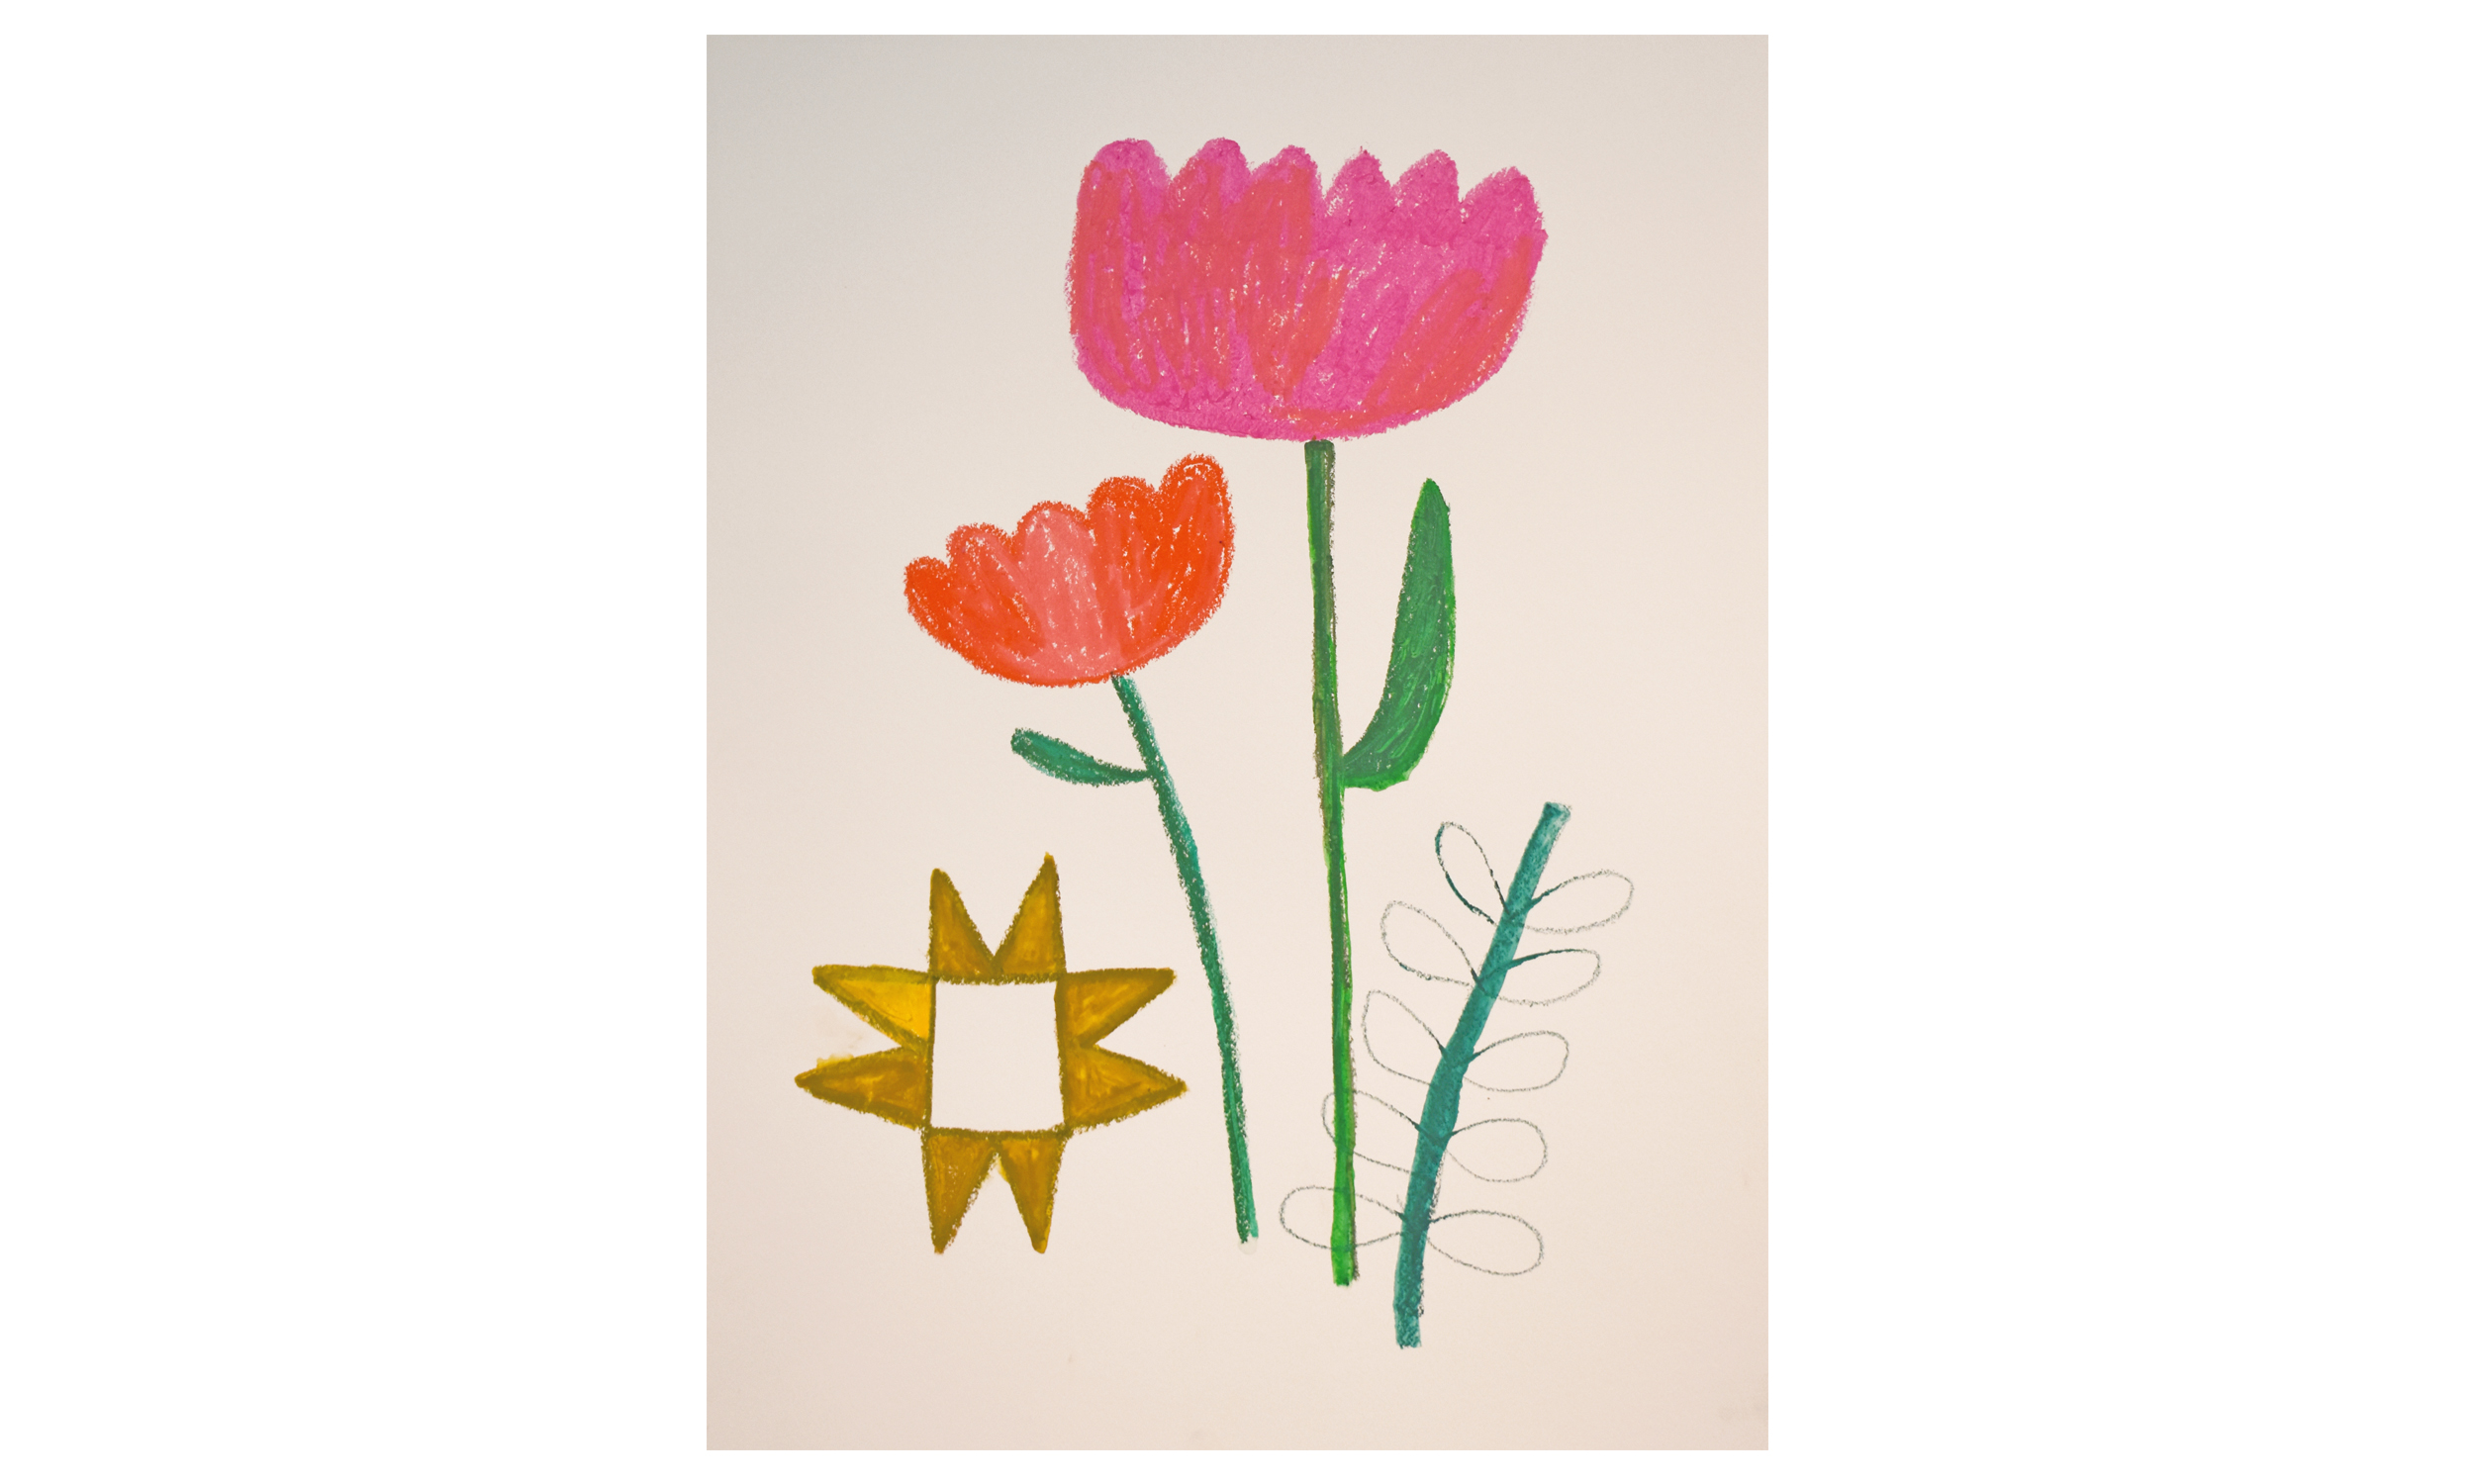 Prize Tulips , crayon on paper, 18 x 24 inches, SOLD